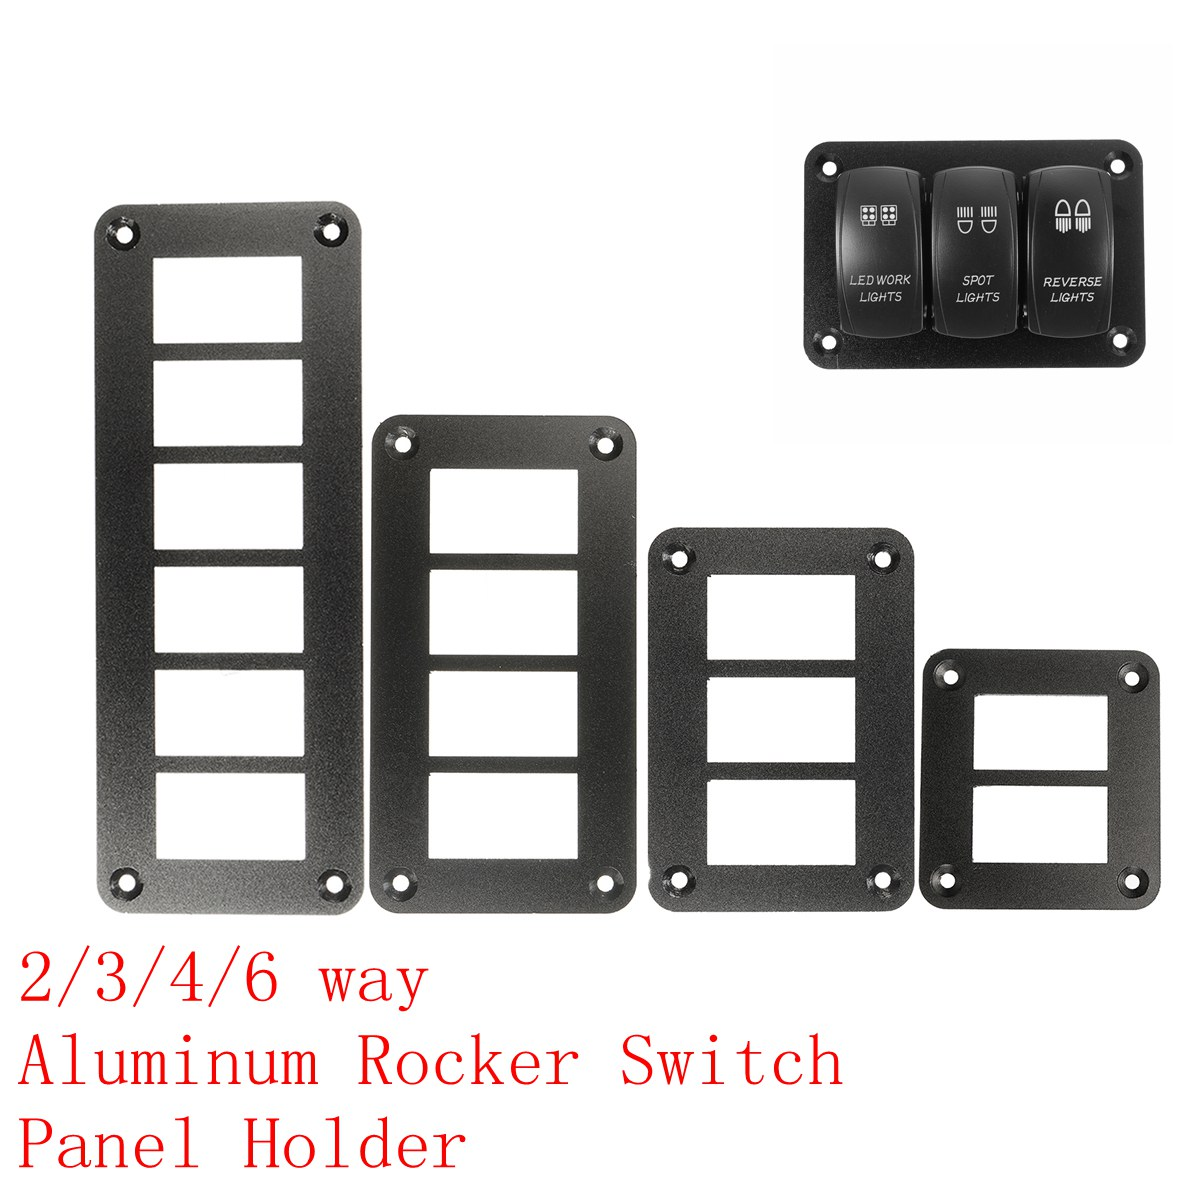 2/3/4/6 Way Aluminum Rocker Switch Panel Housing Holder FOR ARB Carling Narva Boat Type Auto Parts Switches Parts